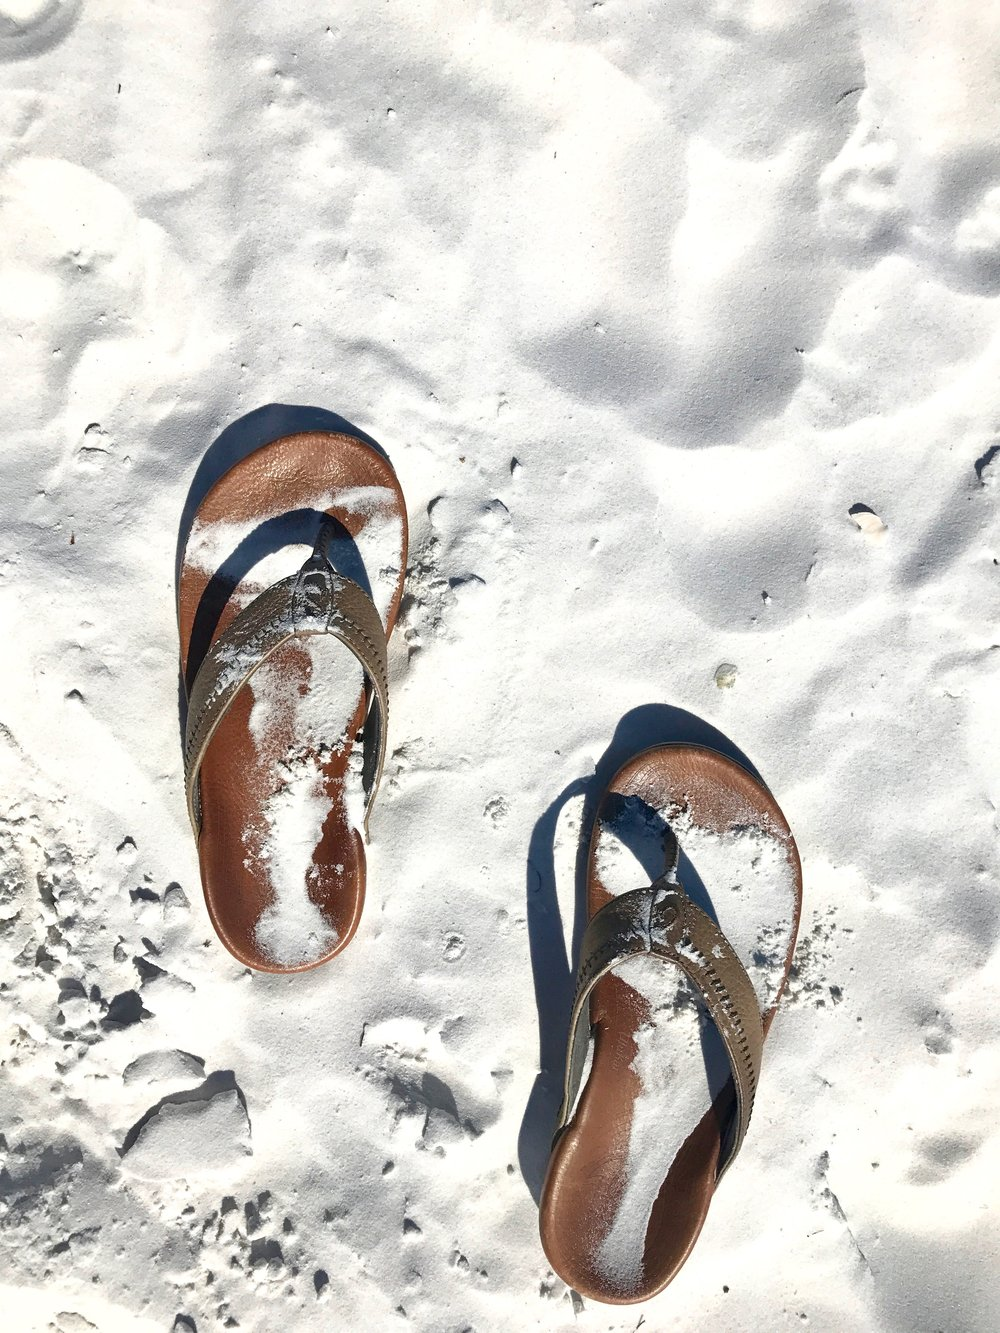 Sandals at Siesta Key